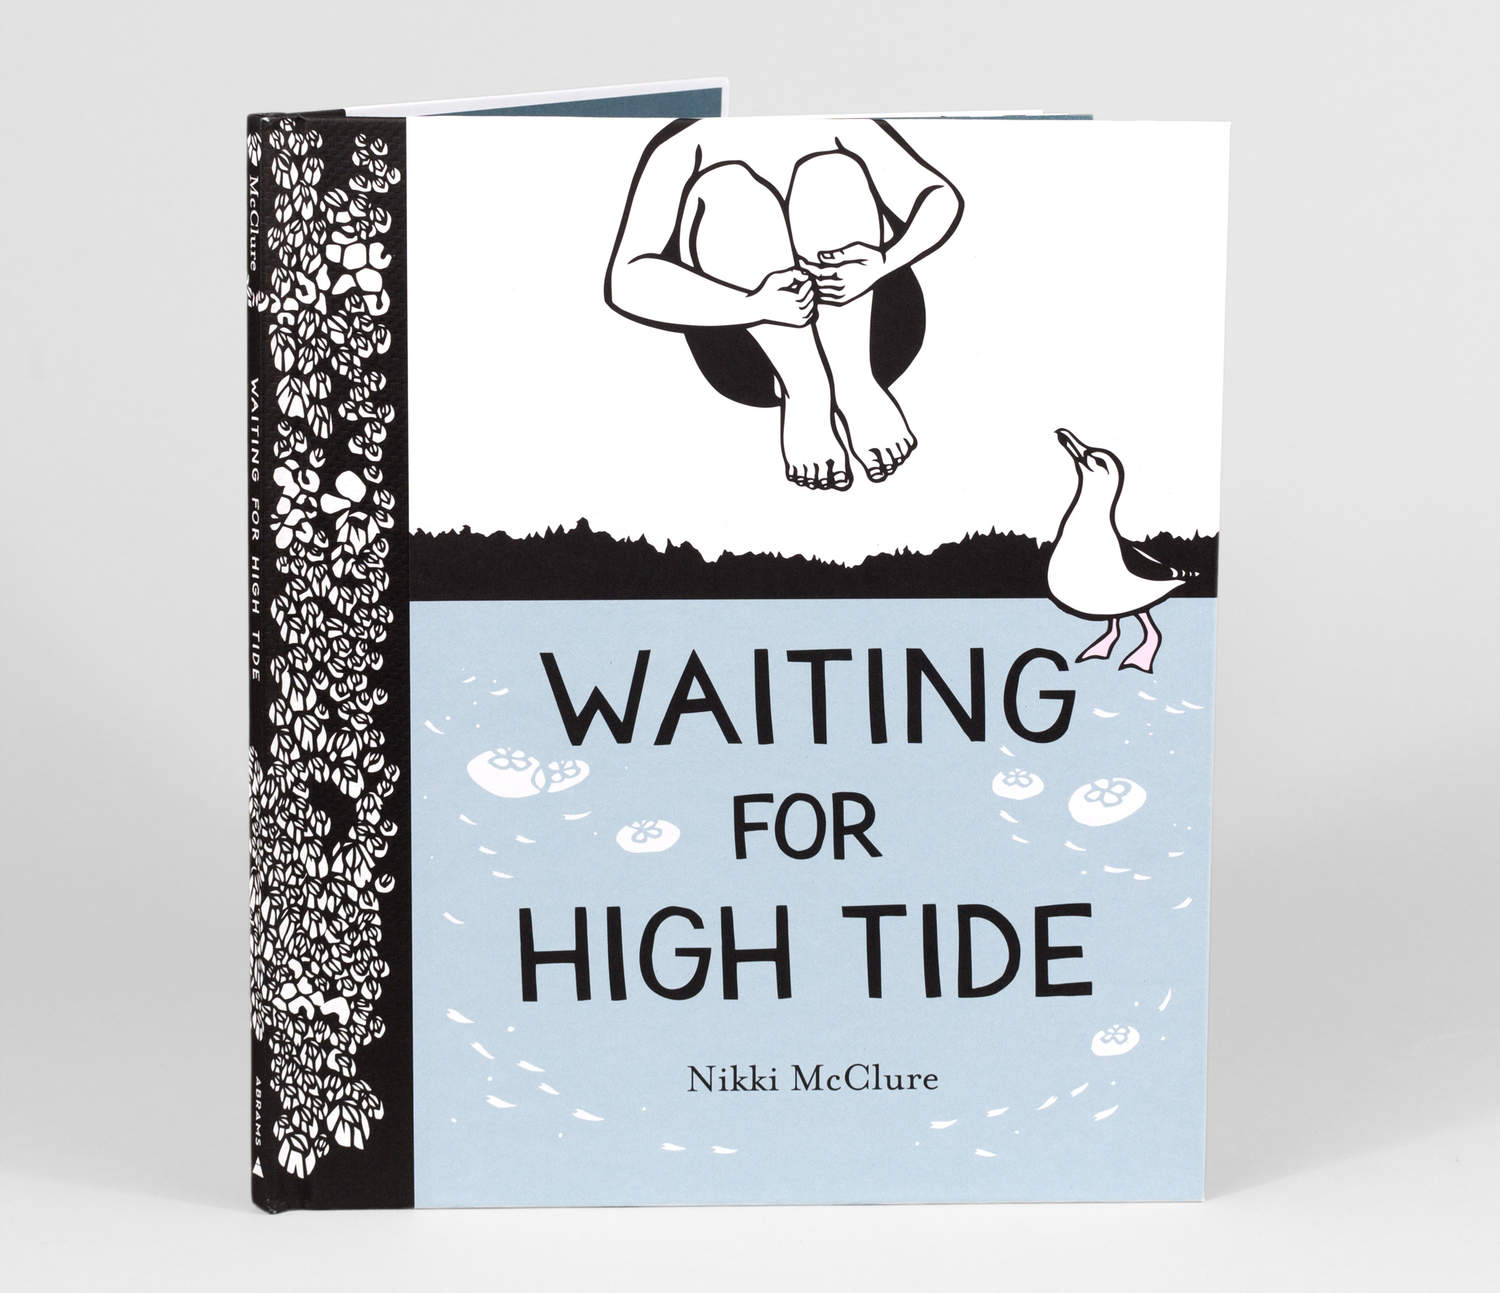 Waiting For High Tide - by Nikki McClure